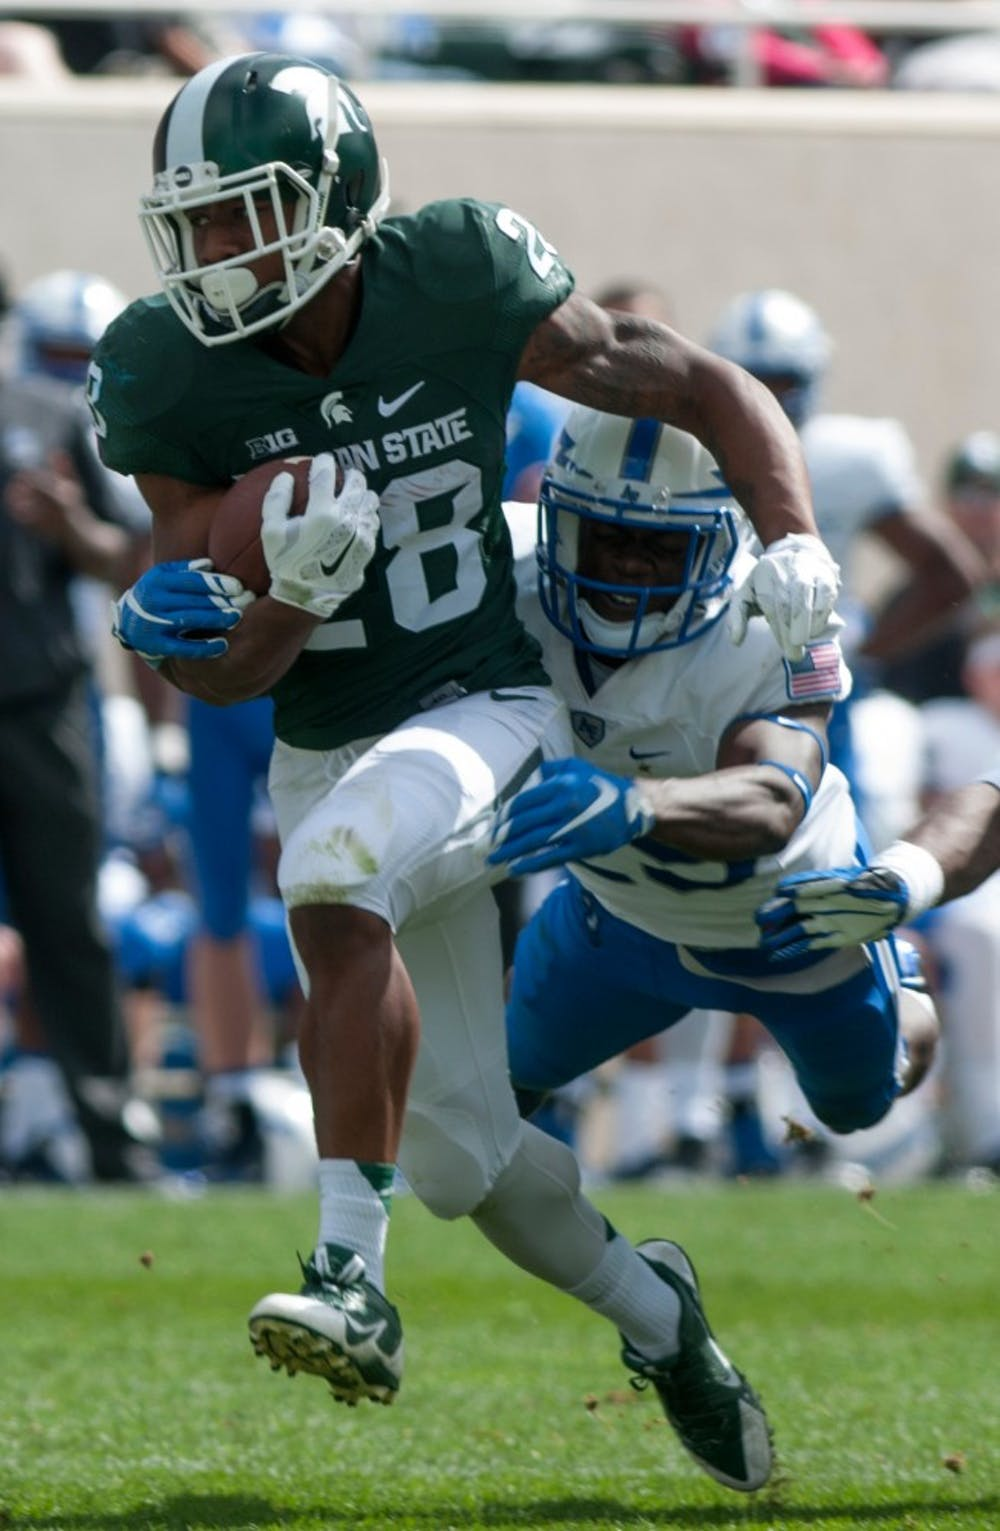 <p>Air Force's defensive back Roland Ladipo tackles redshirt freshman running back Madre London runs the ball in the first half during the game against Air Force on Sept. 19, 2015 at Spartan Stadium. The Spartans defeated the Falcons, 35-21. Kennedy Thatch/The State News</p>